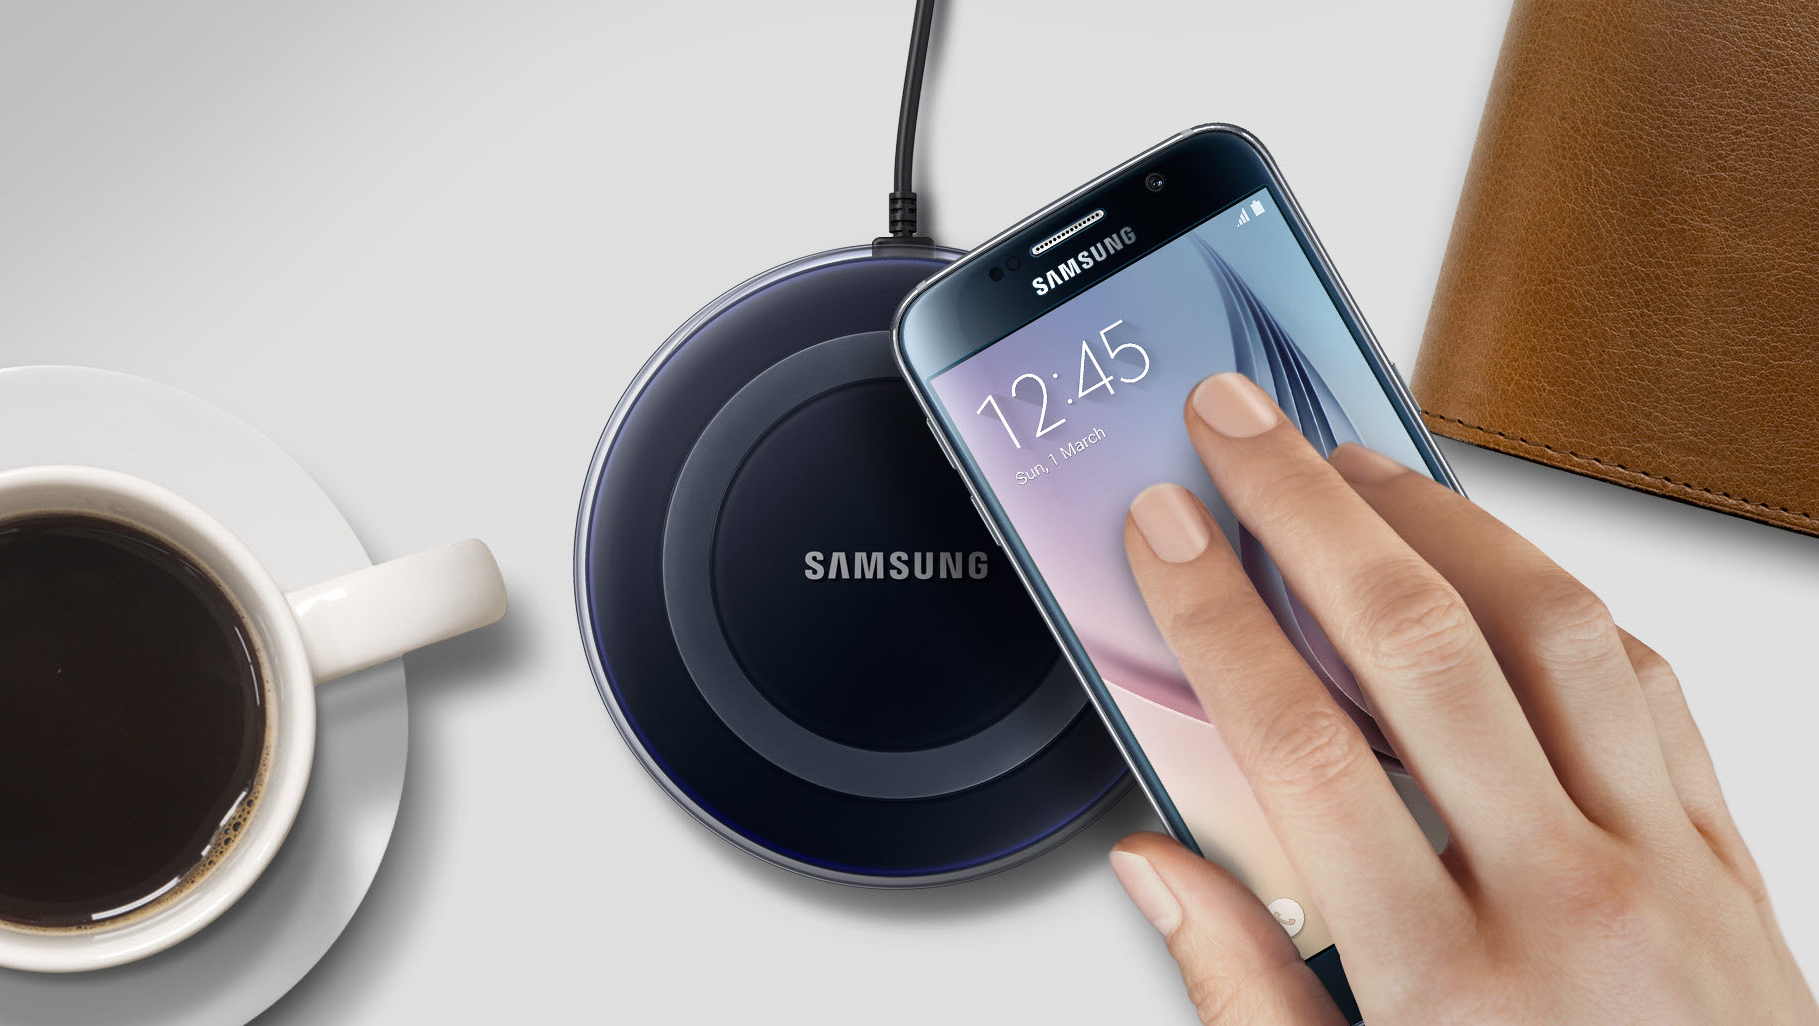 best wireless charging pad, best wireless charger, wireless charging pad, wireless charger, qi charger, wireless phone charger, wireless qi charging, wireless charging station, best qi charger, samsung wireless charger